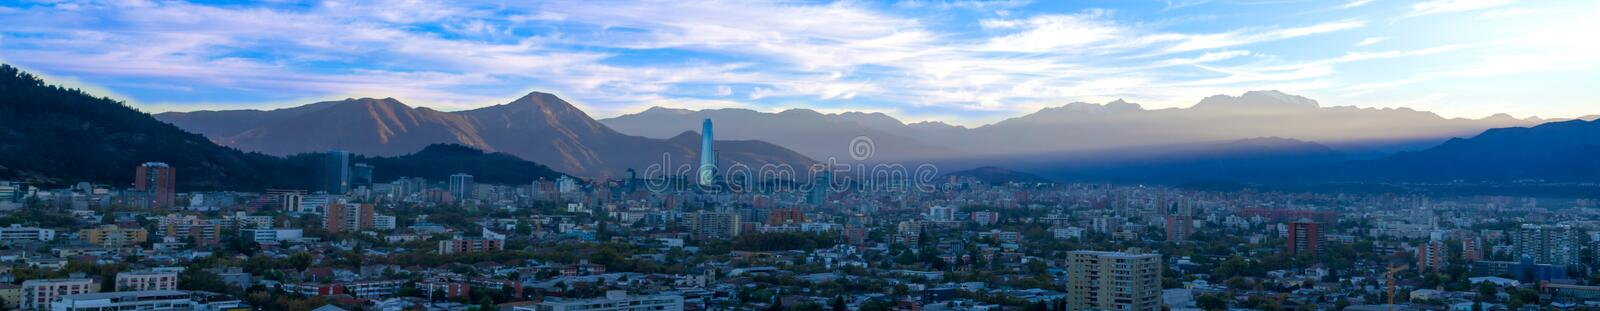 Panoramablick von Santiago in Chile stockfotografie